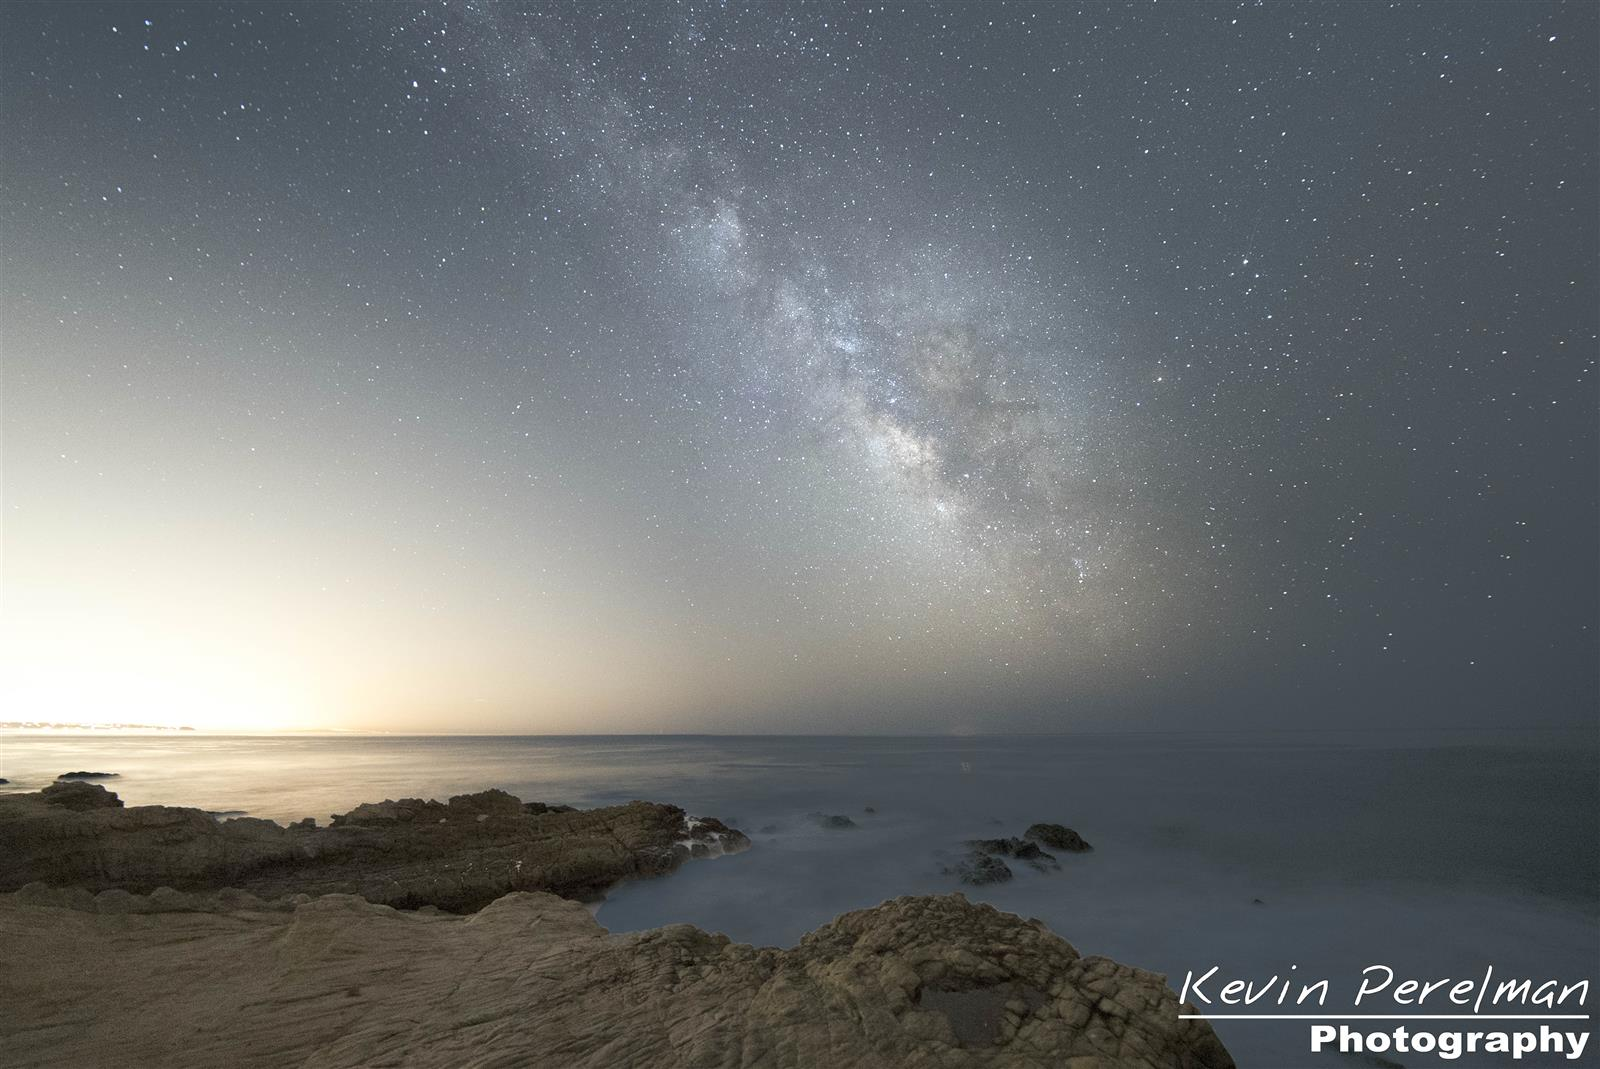 This is a Milkyway picture at Leo Correo beach off of PCH